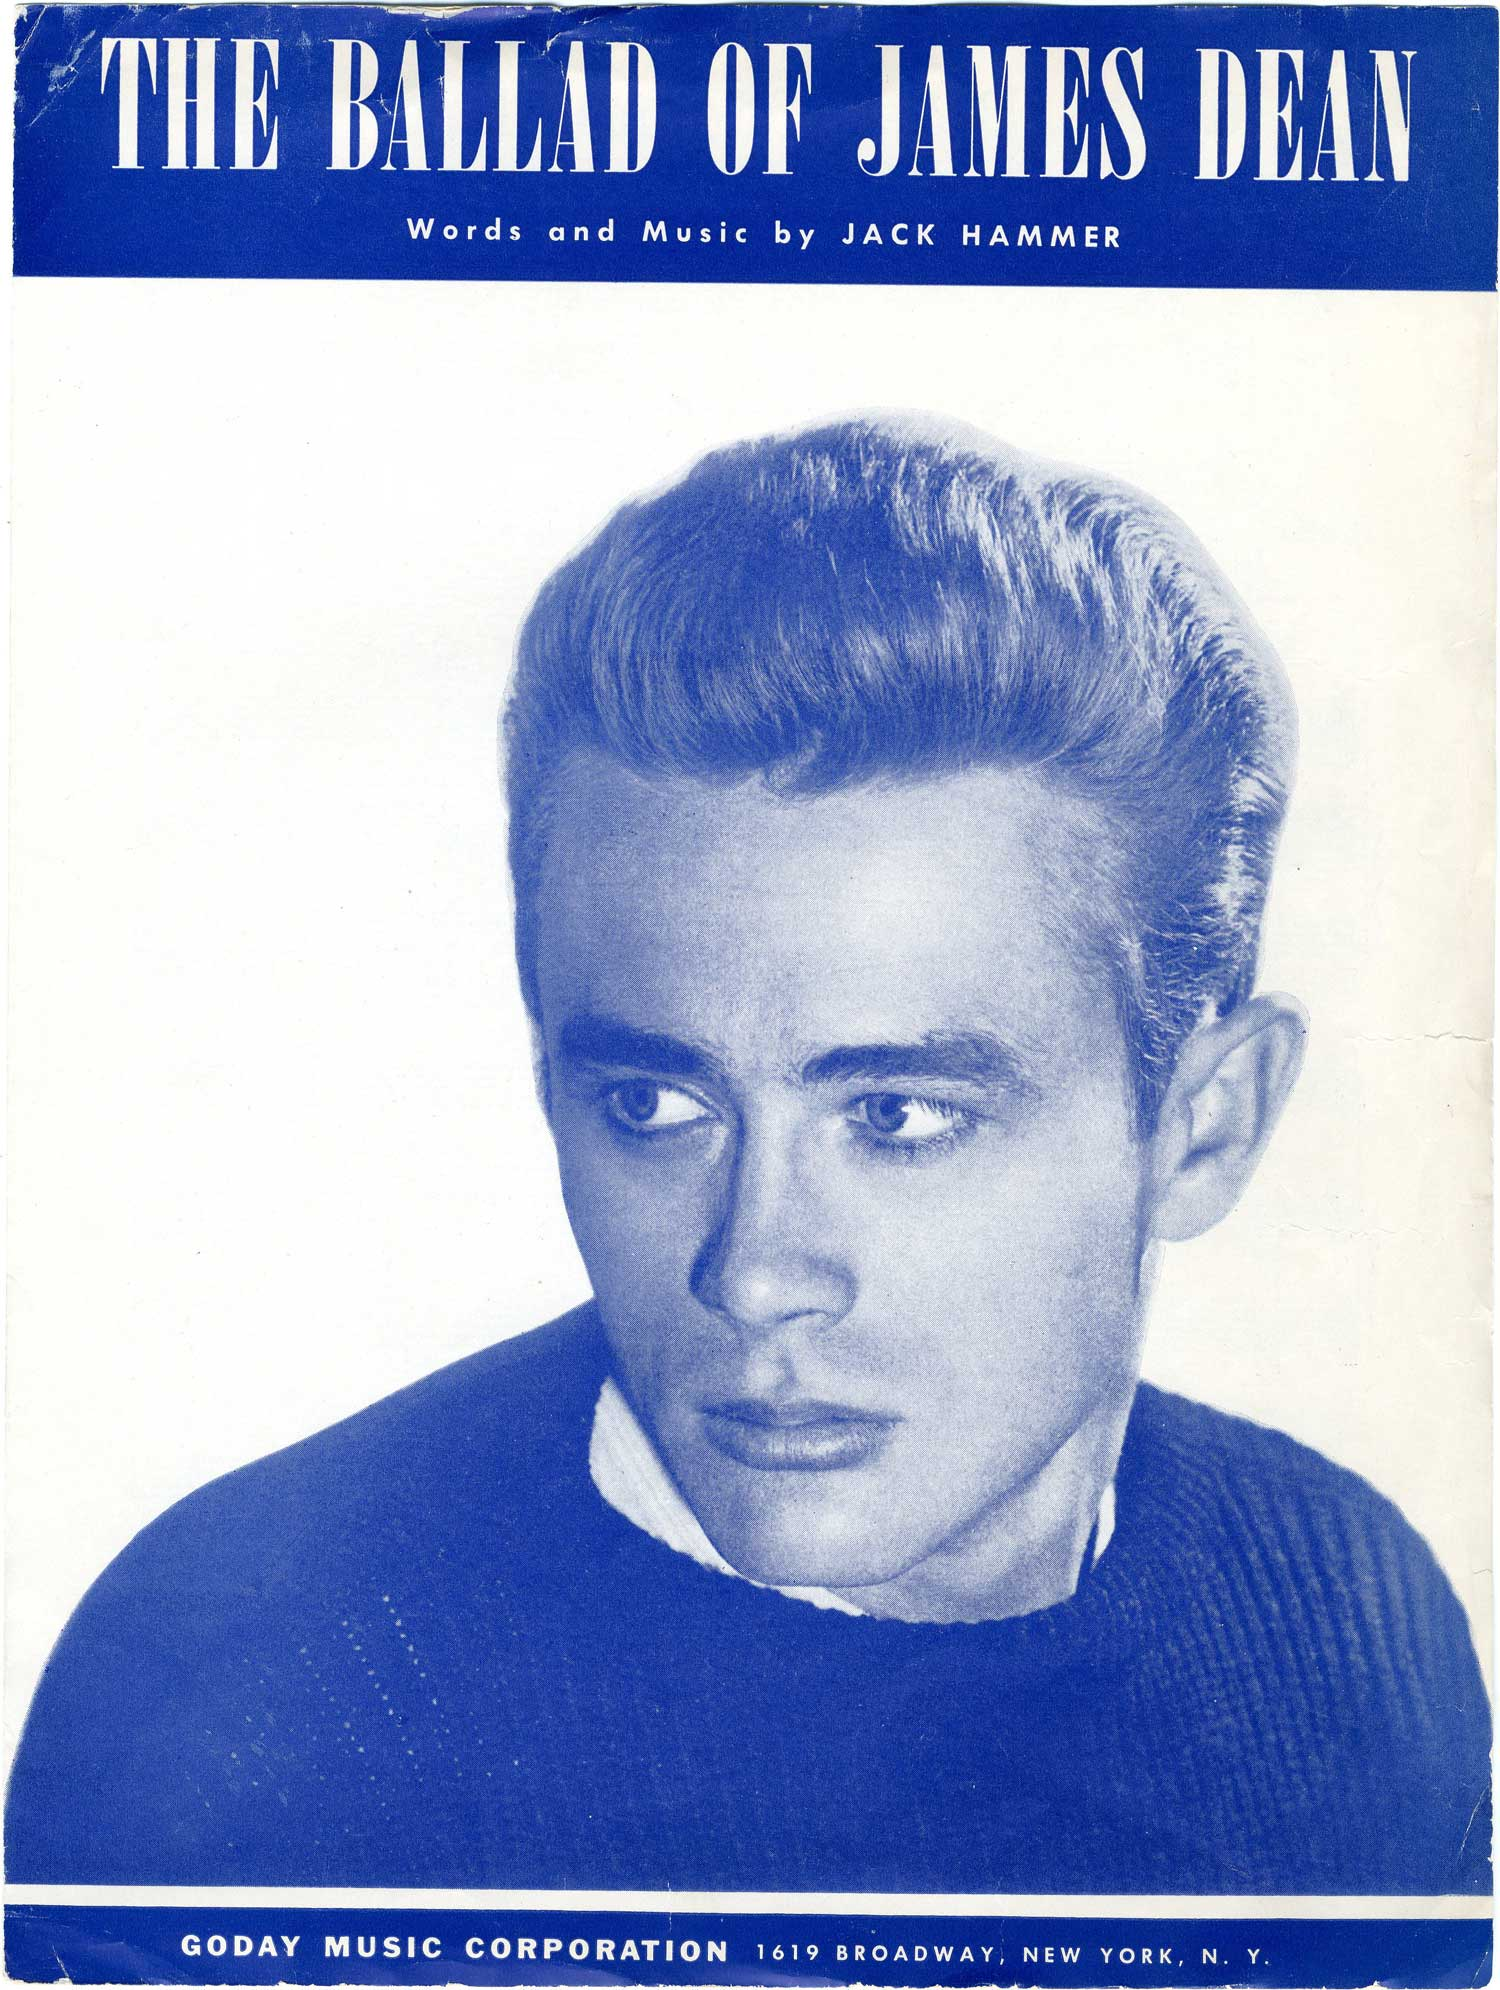 The death of James Dean resulted in an outpouring of tributes including this Jack Hammer song.